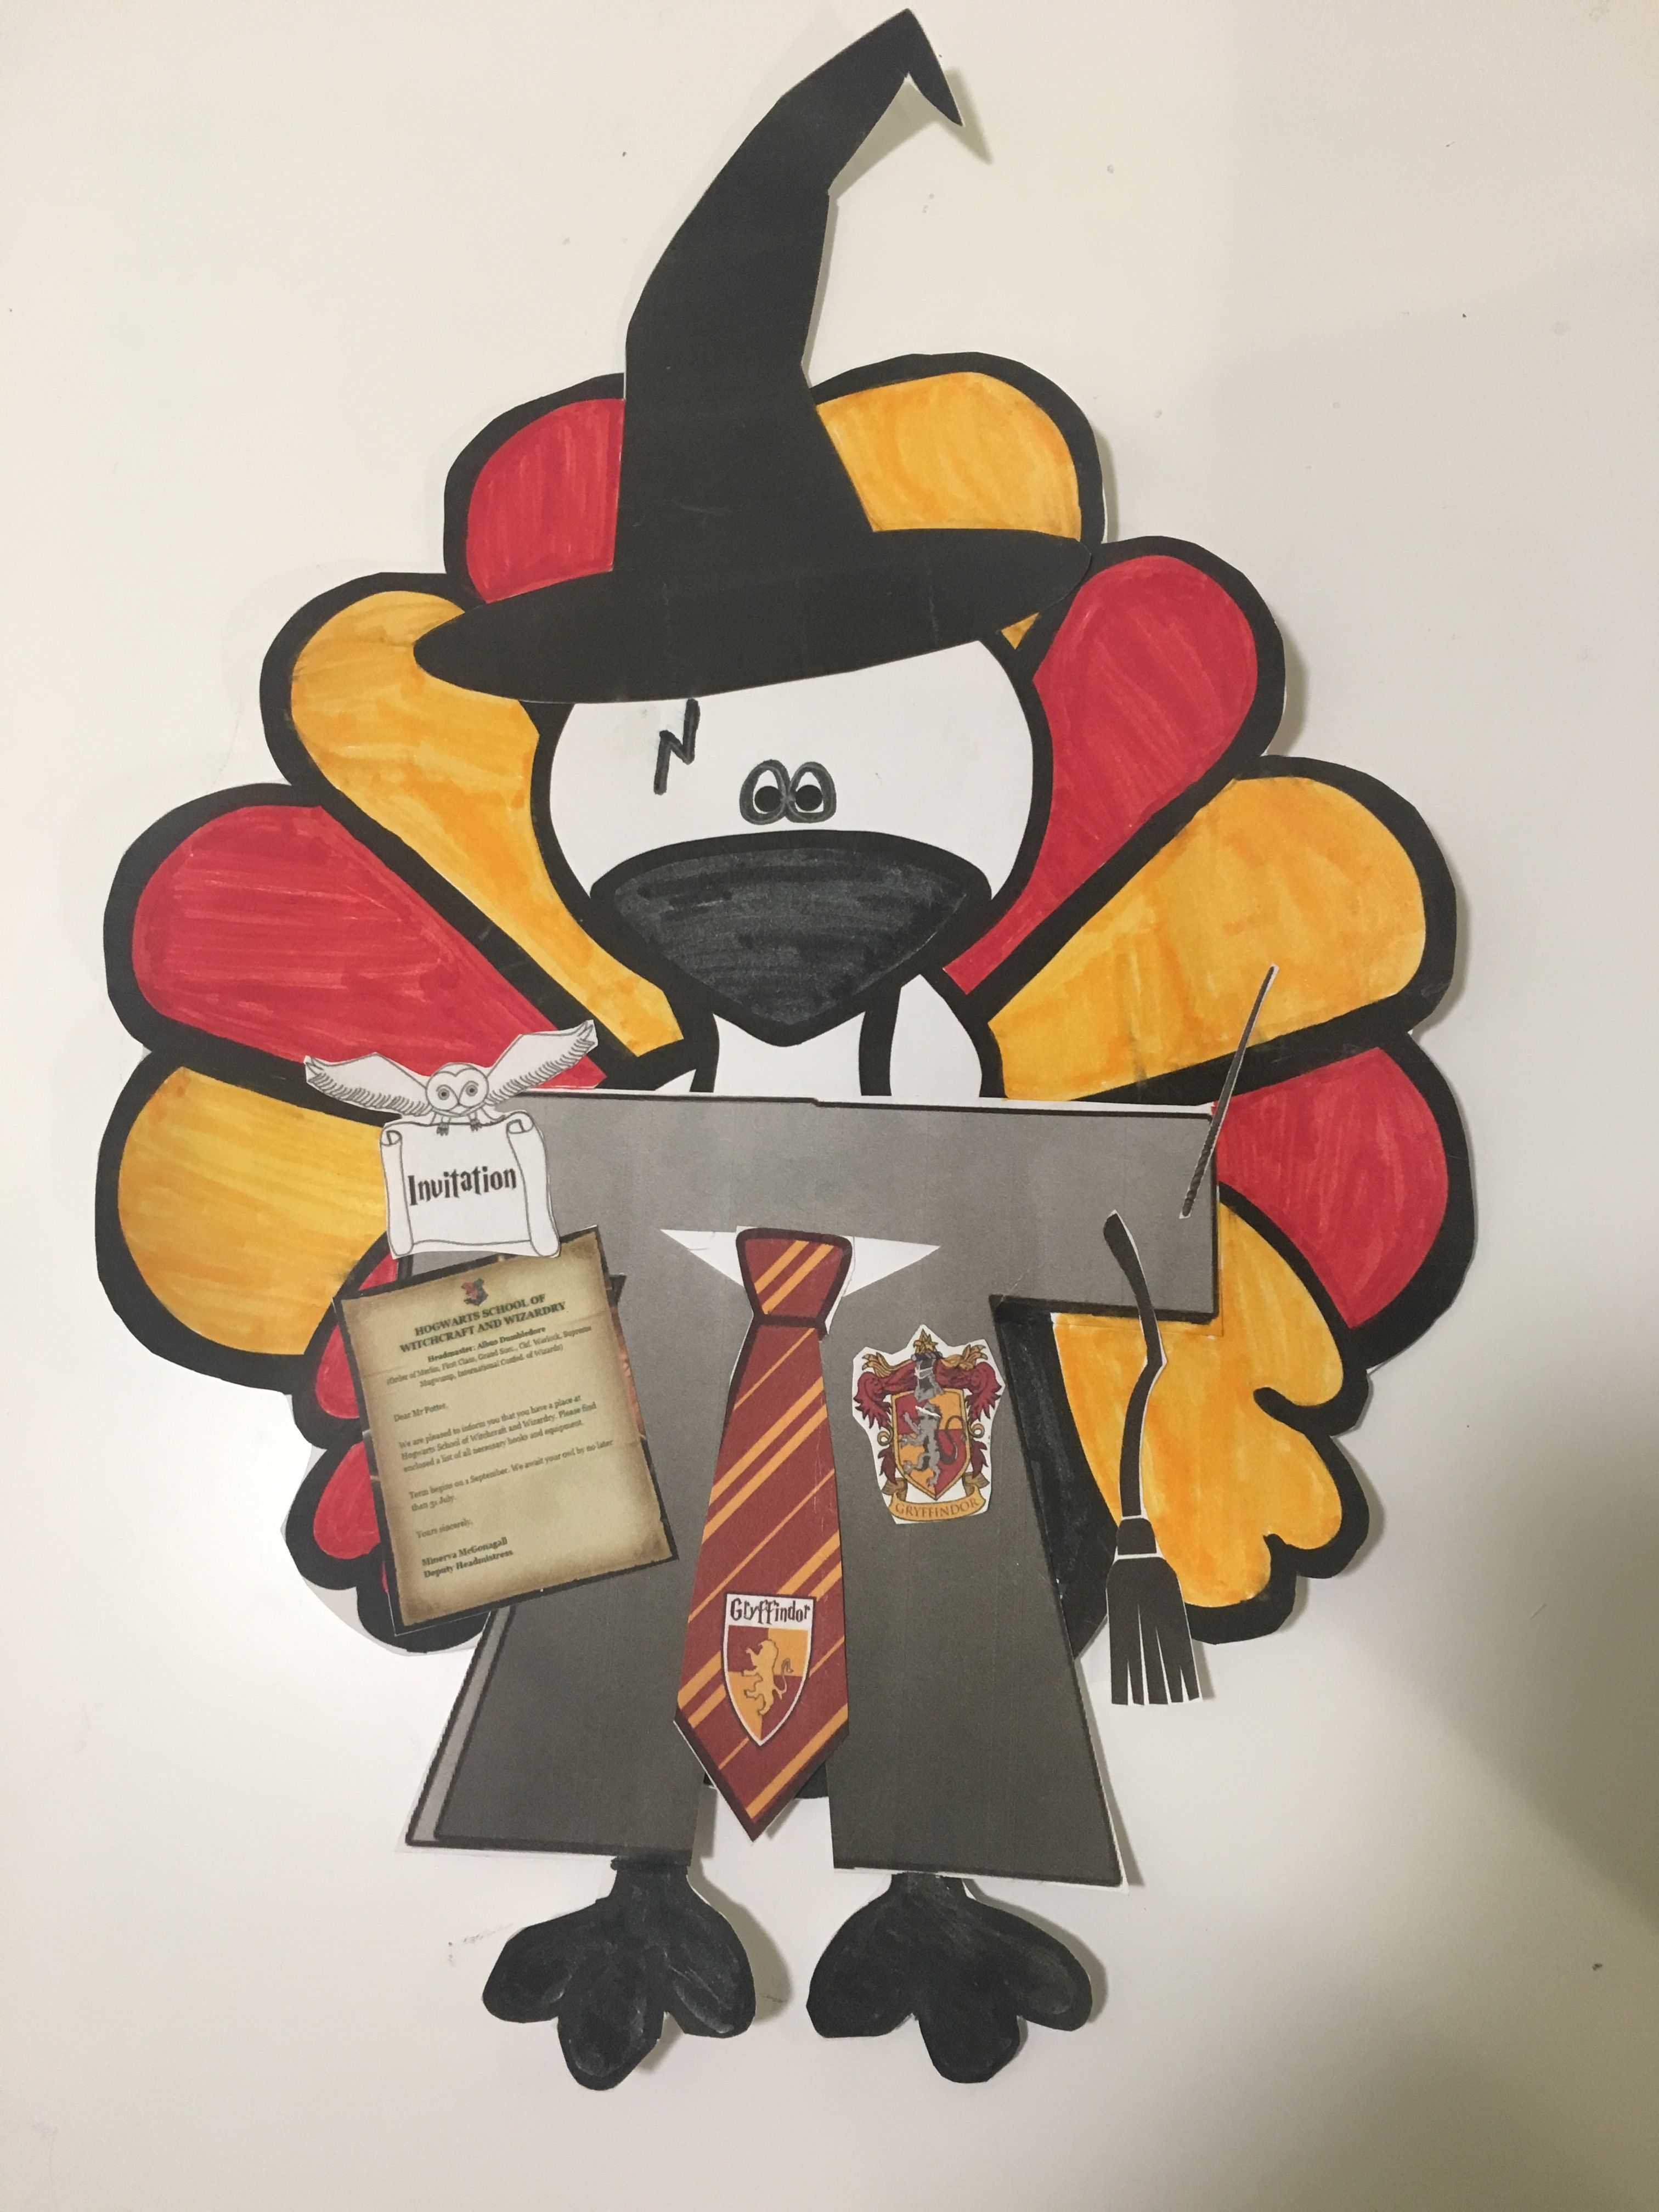 Harry Potter Inspired Disguise a Turkey Project #disguiseaturkeyideas